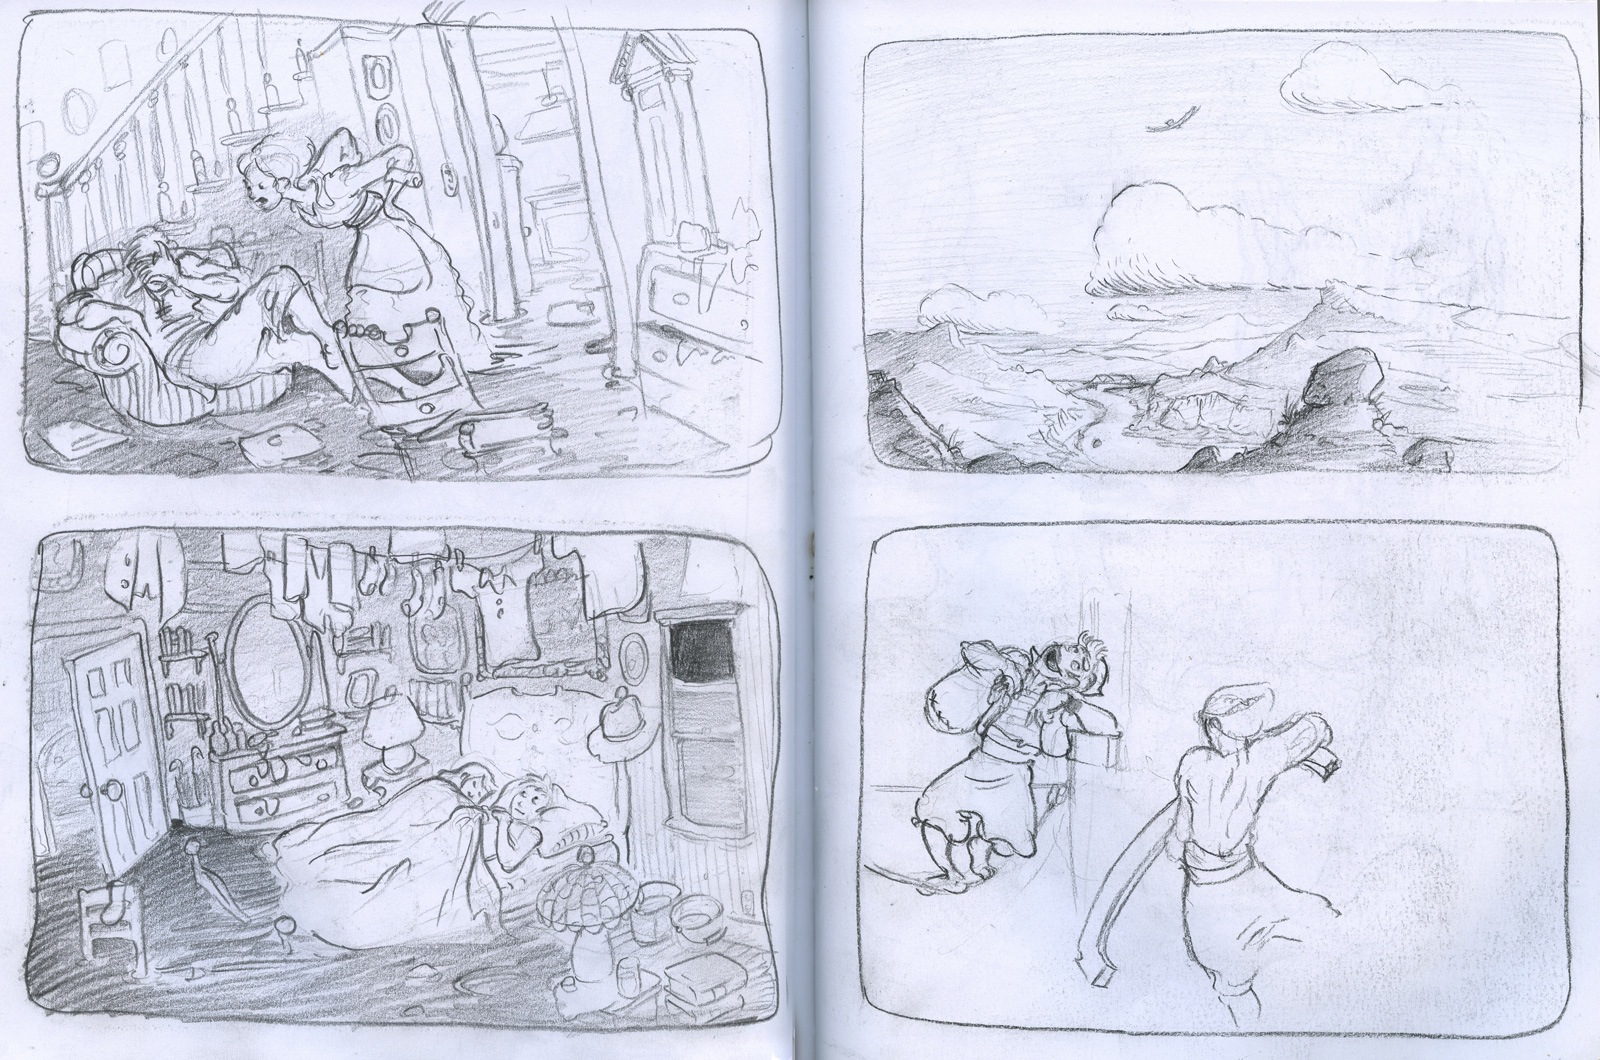 sketchbook drawing storyboard panels